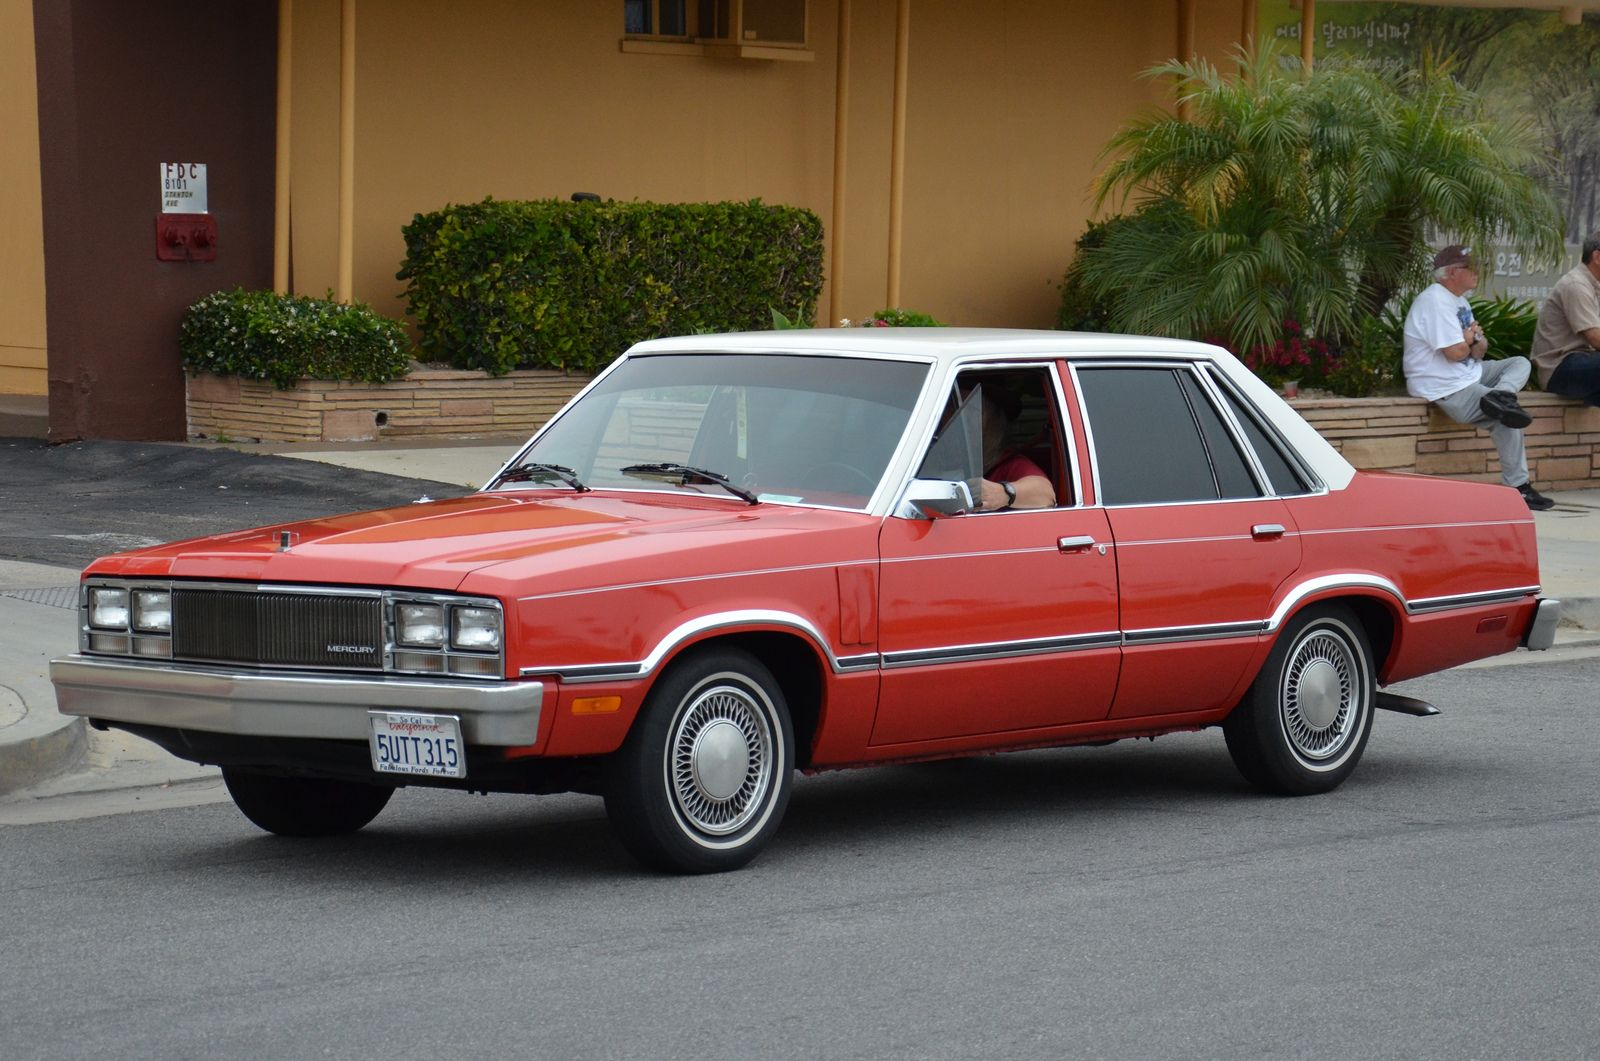 1978 Mercury Zephyr 4 Door Sedan Subcompact Sedan Ford Motor